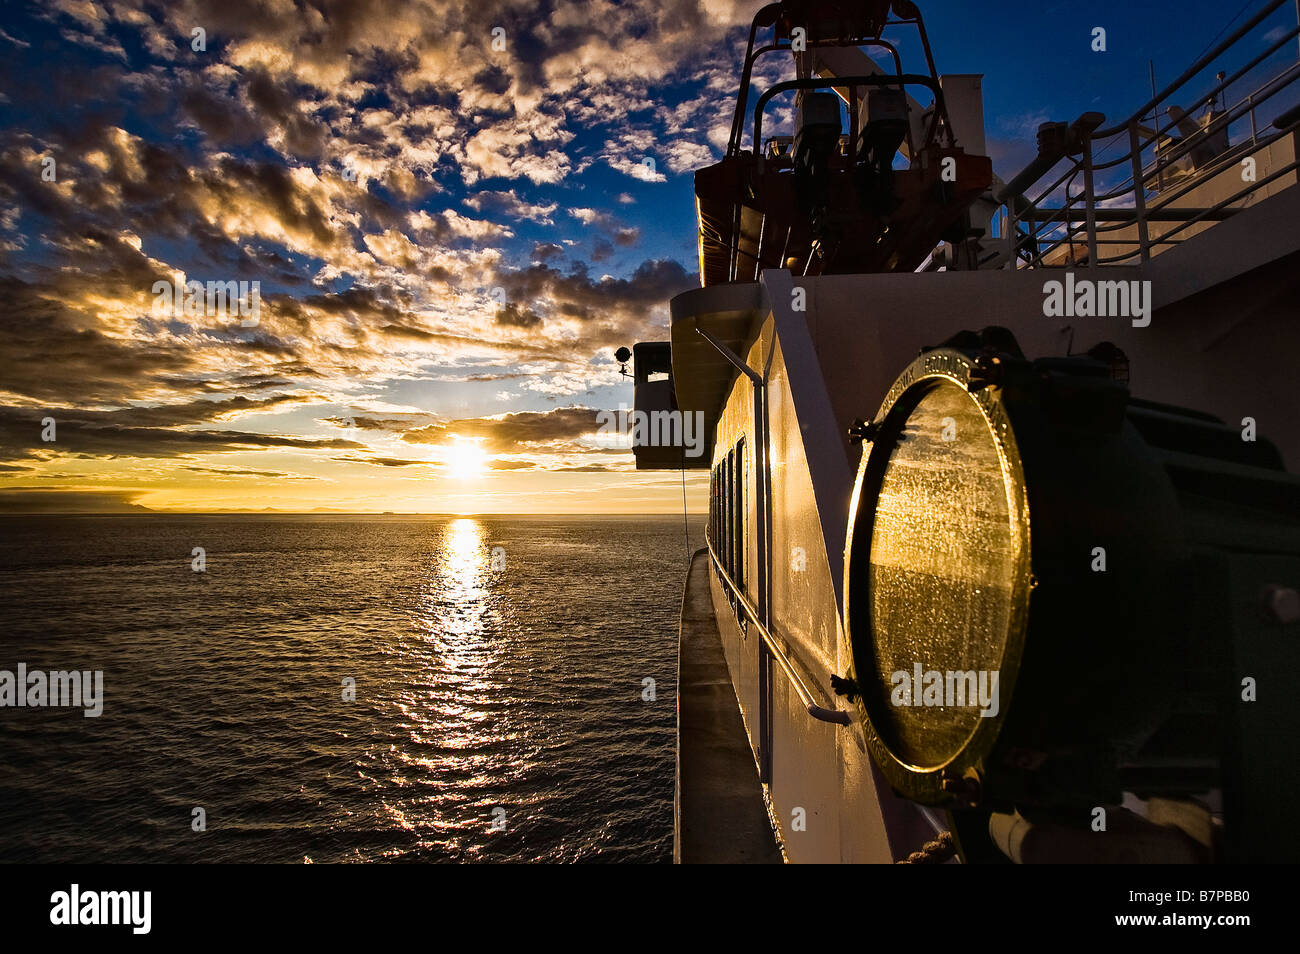 Sunset reflected on the M/V Columbia ship, in the Inside Passage. - Stock Image